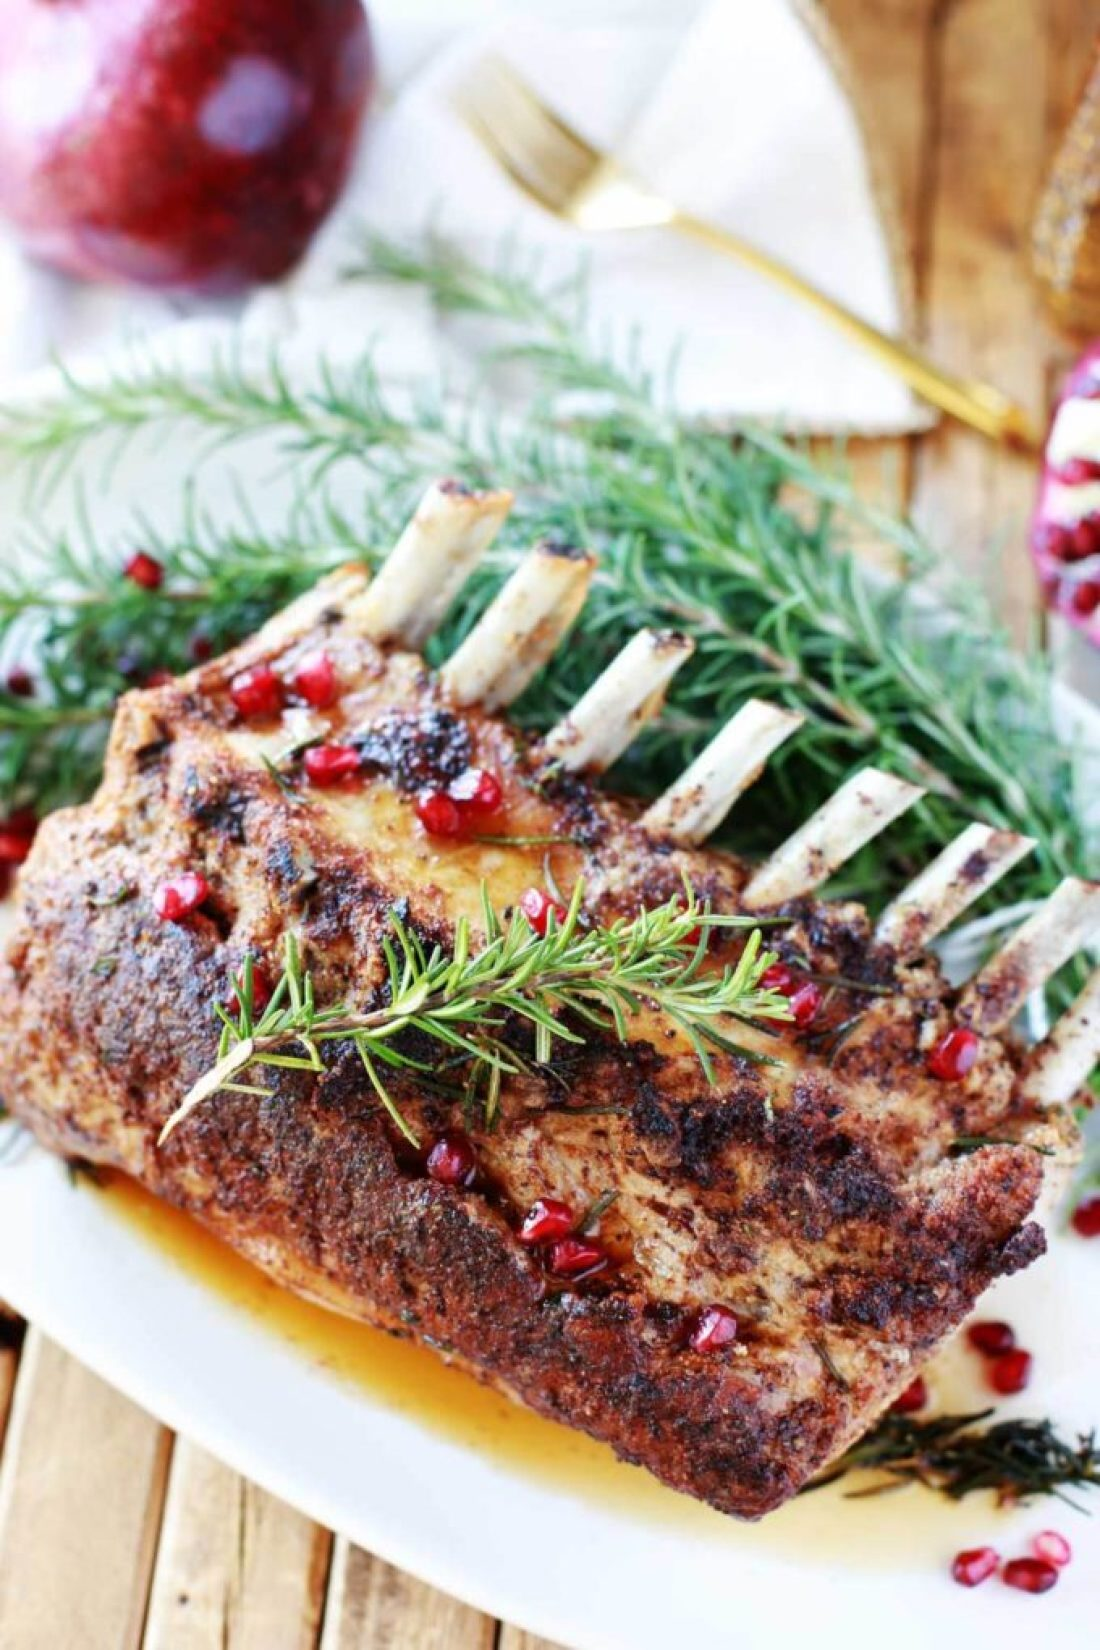 How to Roast Pork Rack: How to Perfectly Roast a Rack of Pork: juicy, tender, and super flavorful anyone? Following this method will help you get the best rack of pork you have ever eaten. Compliments guaranteed.